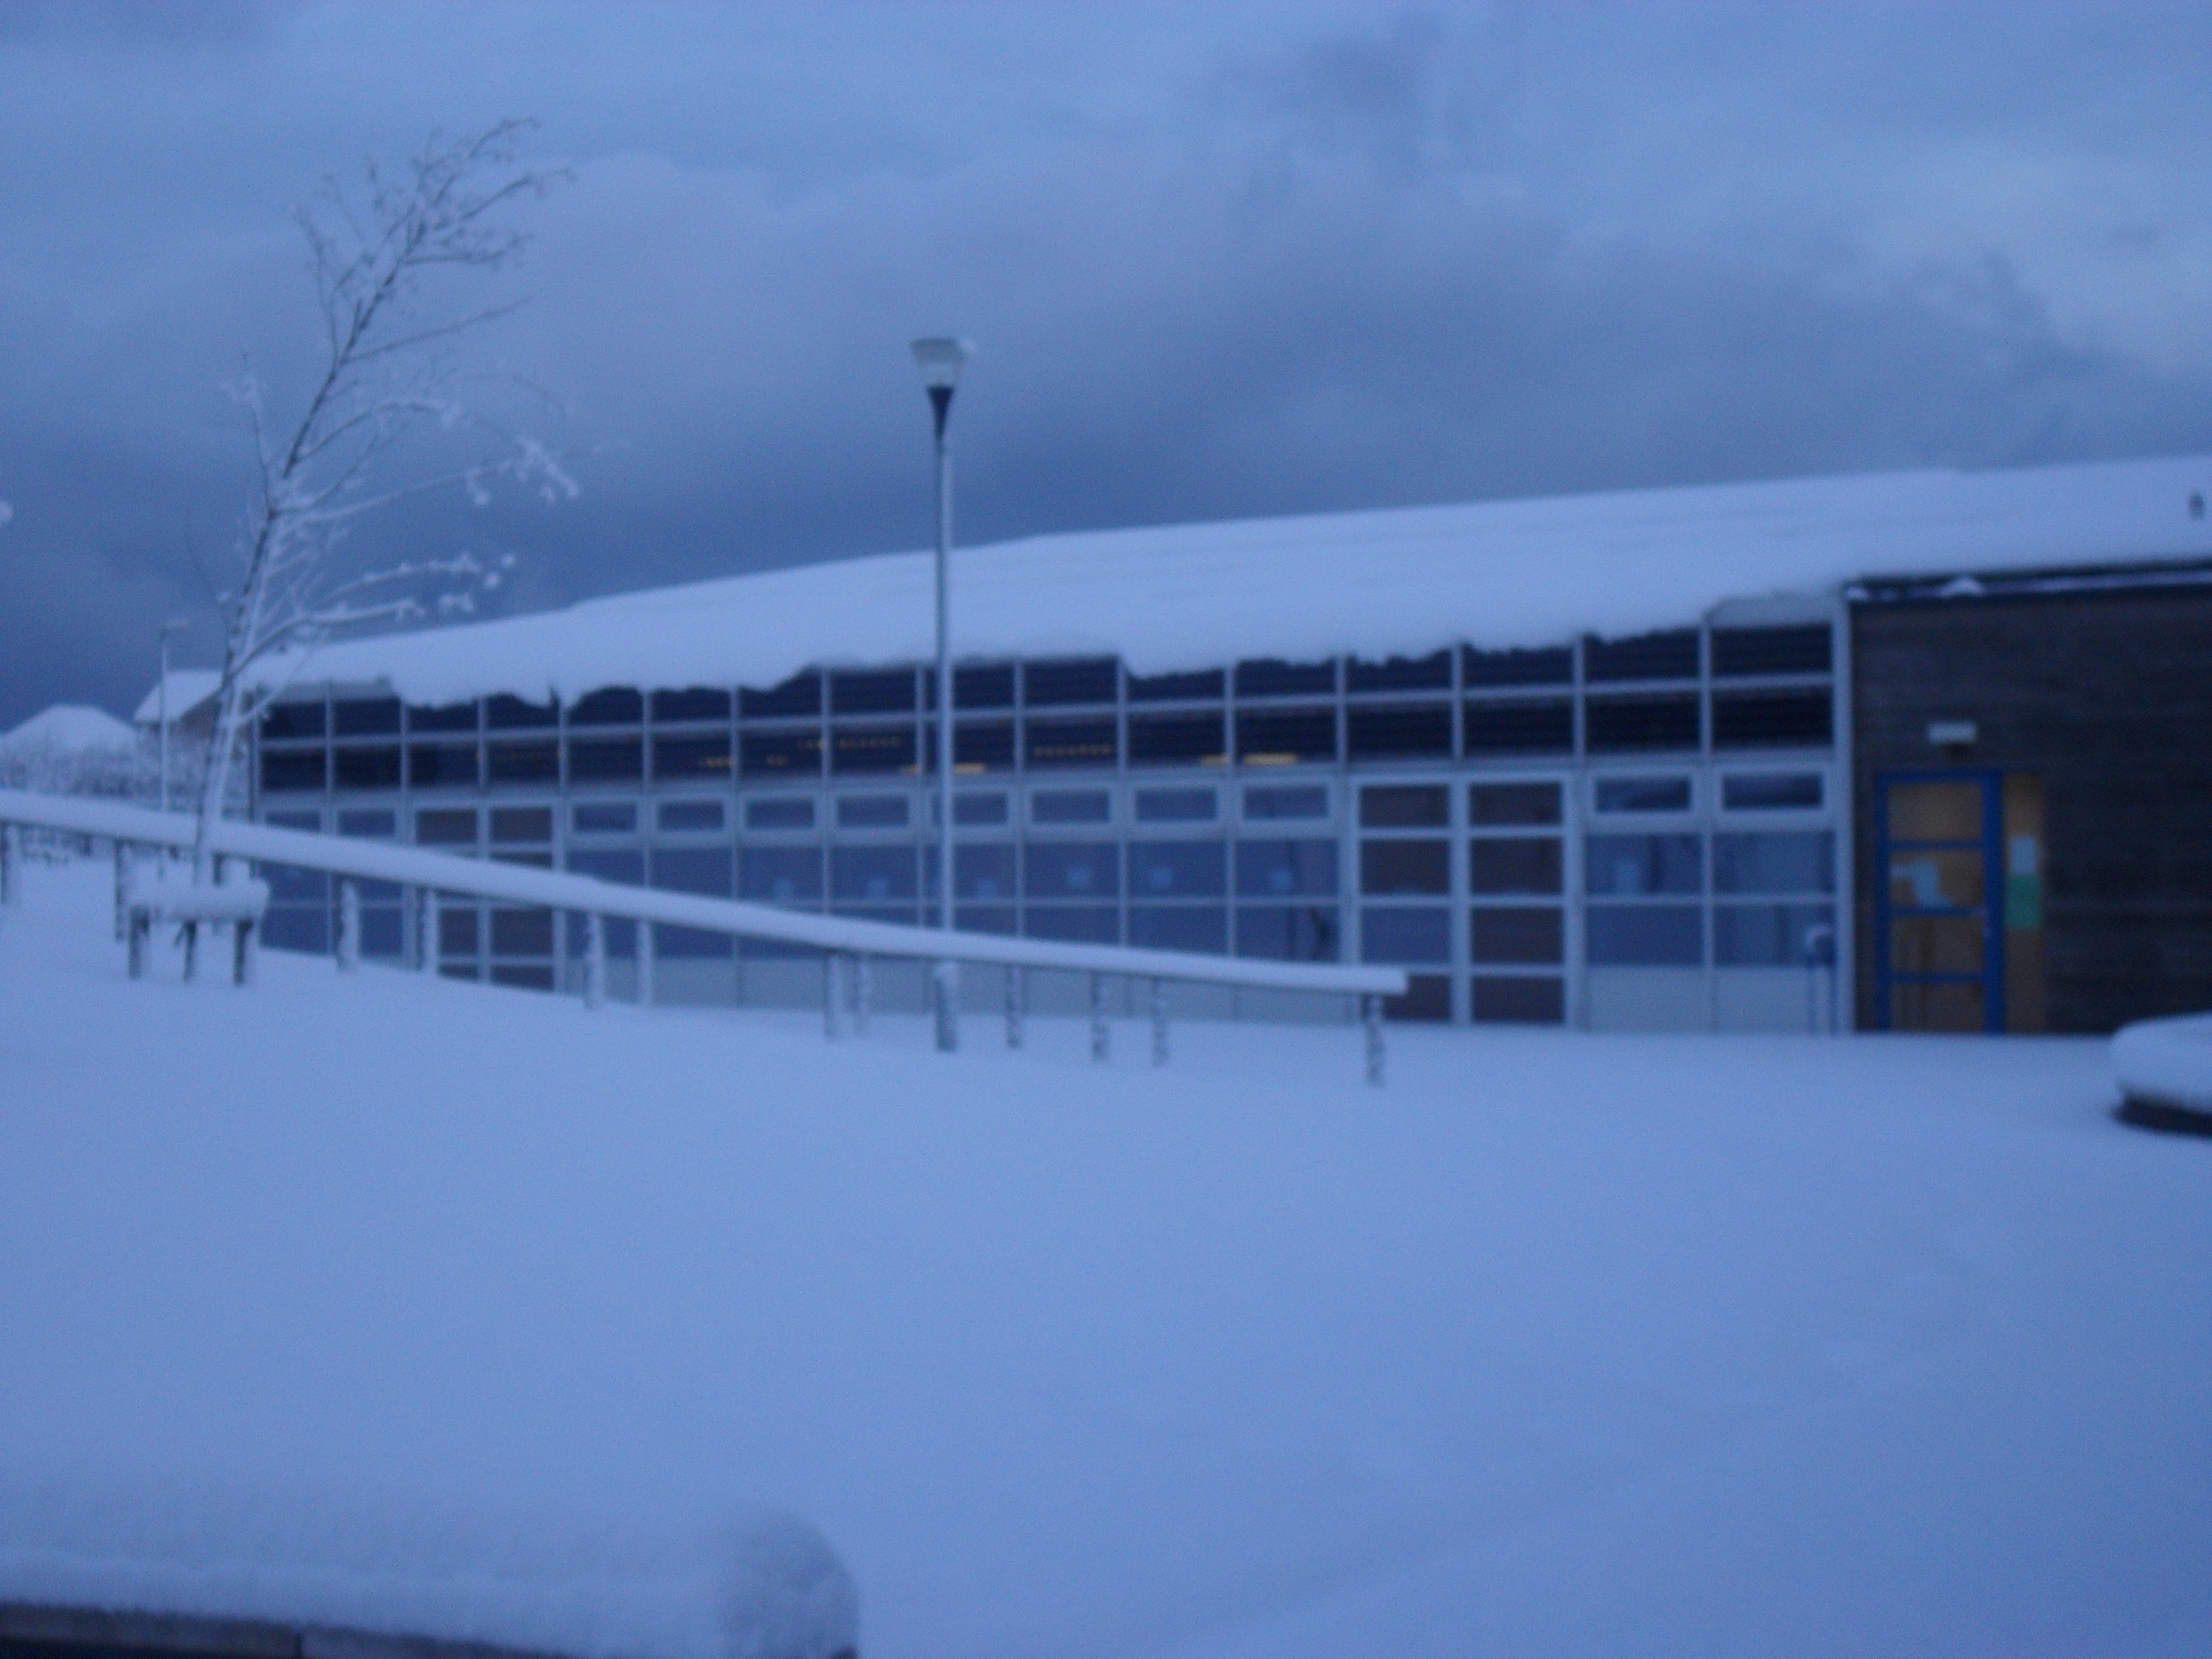 Snow At Windygoul Windygoul Primary School